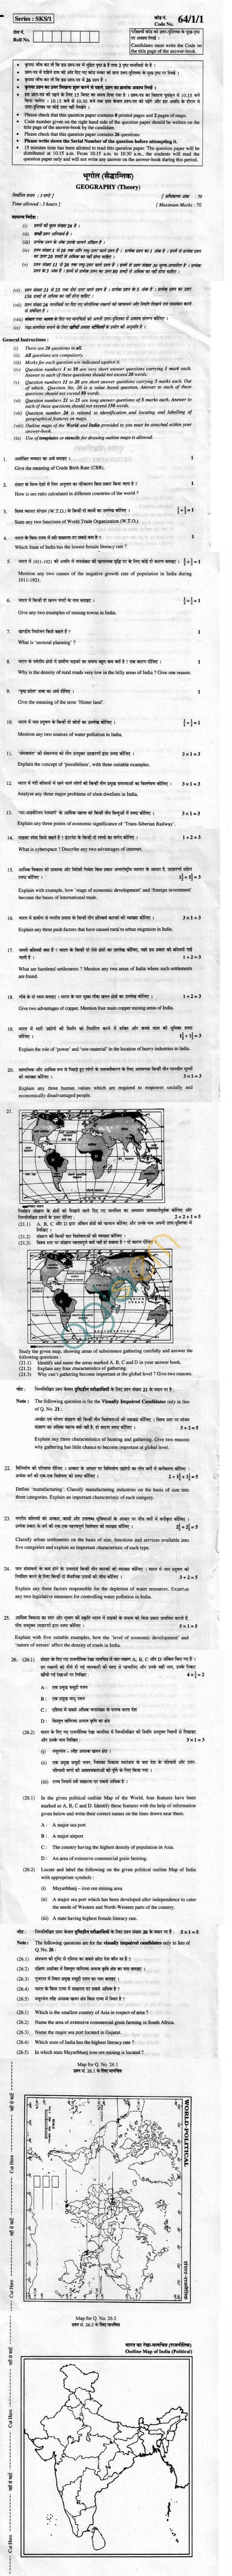 CBSE Board Exam 2013 Class XII Question Paper - Geography